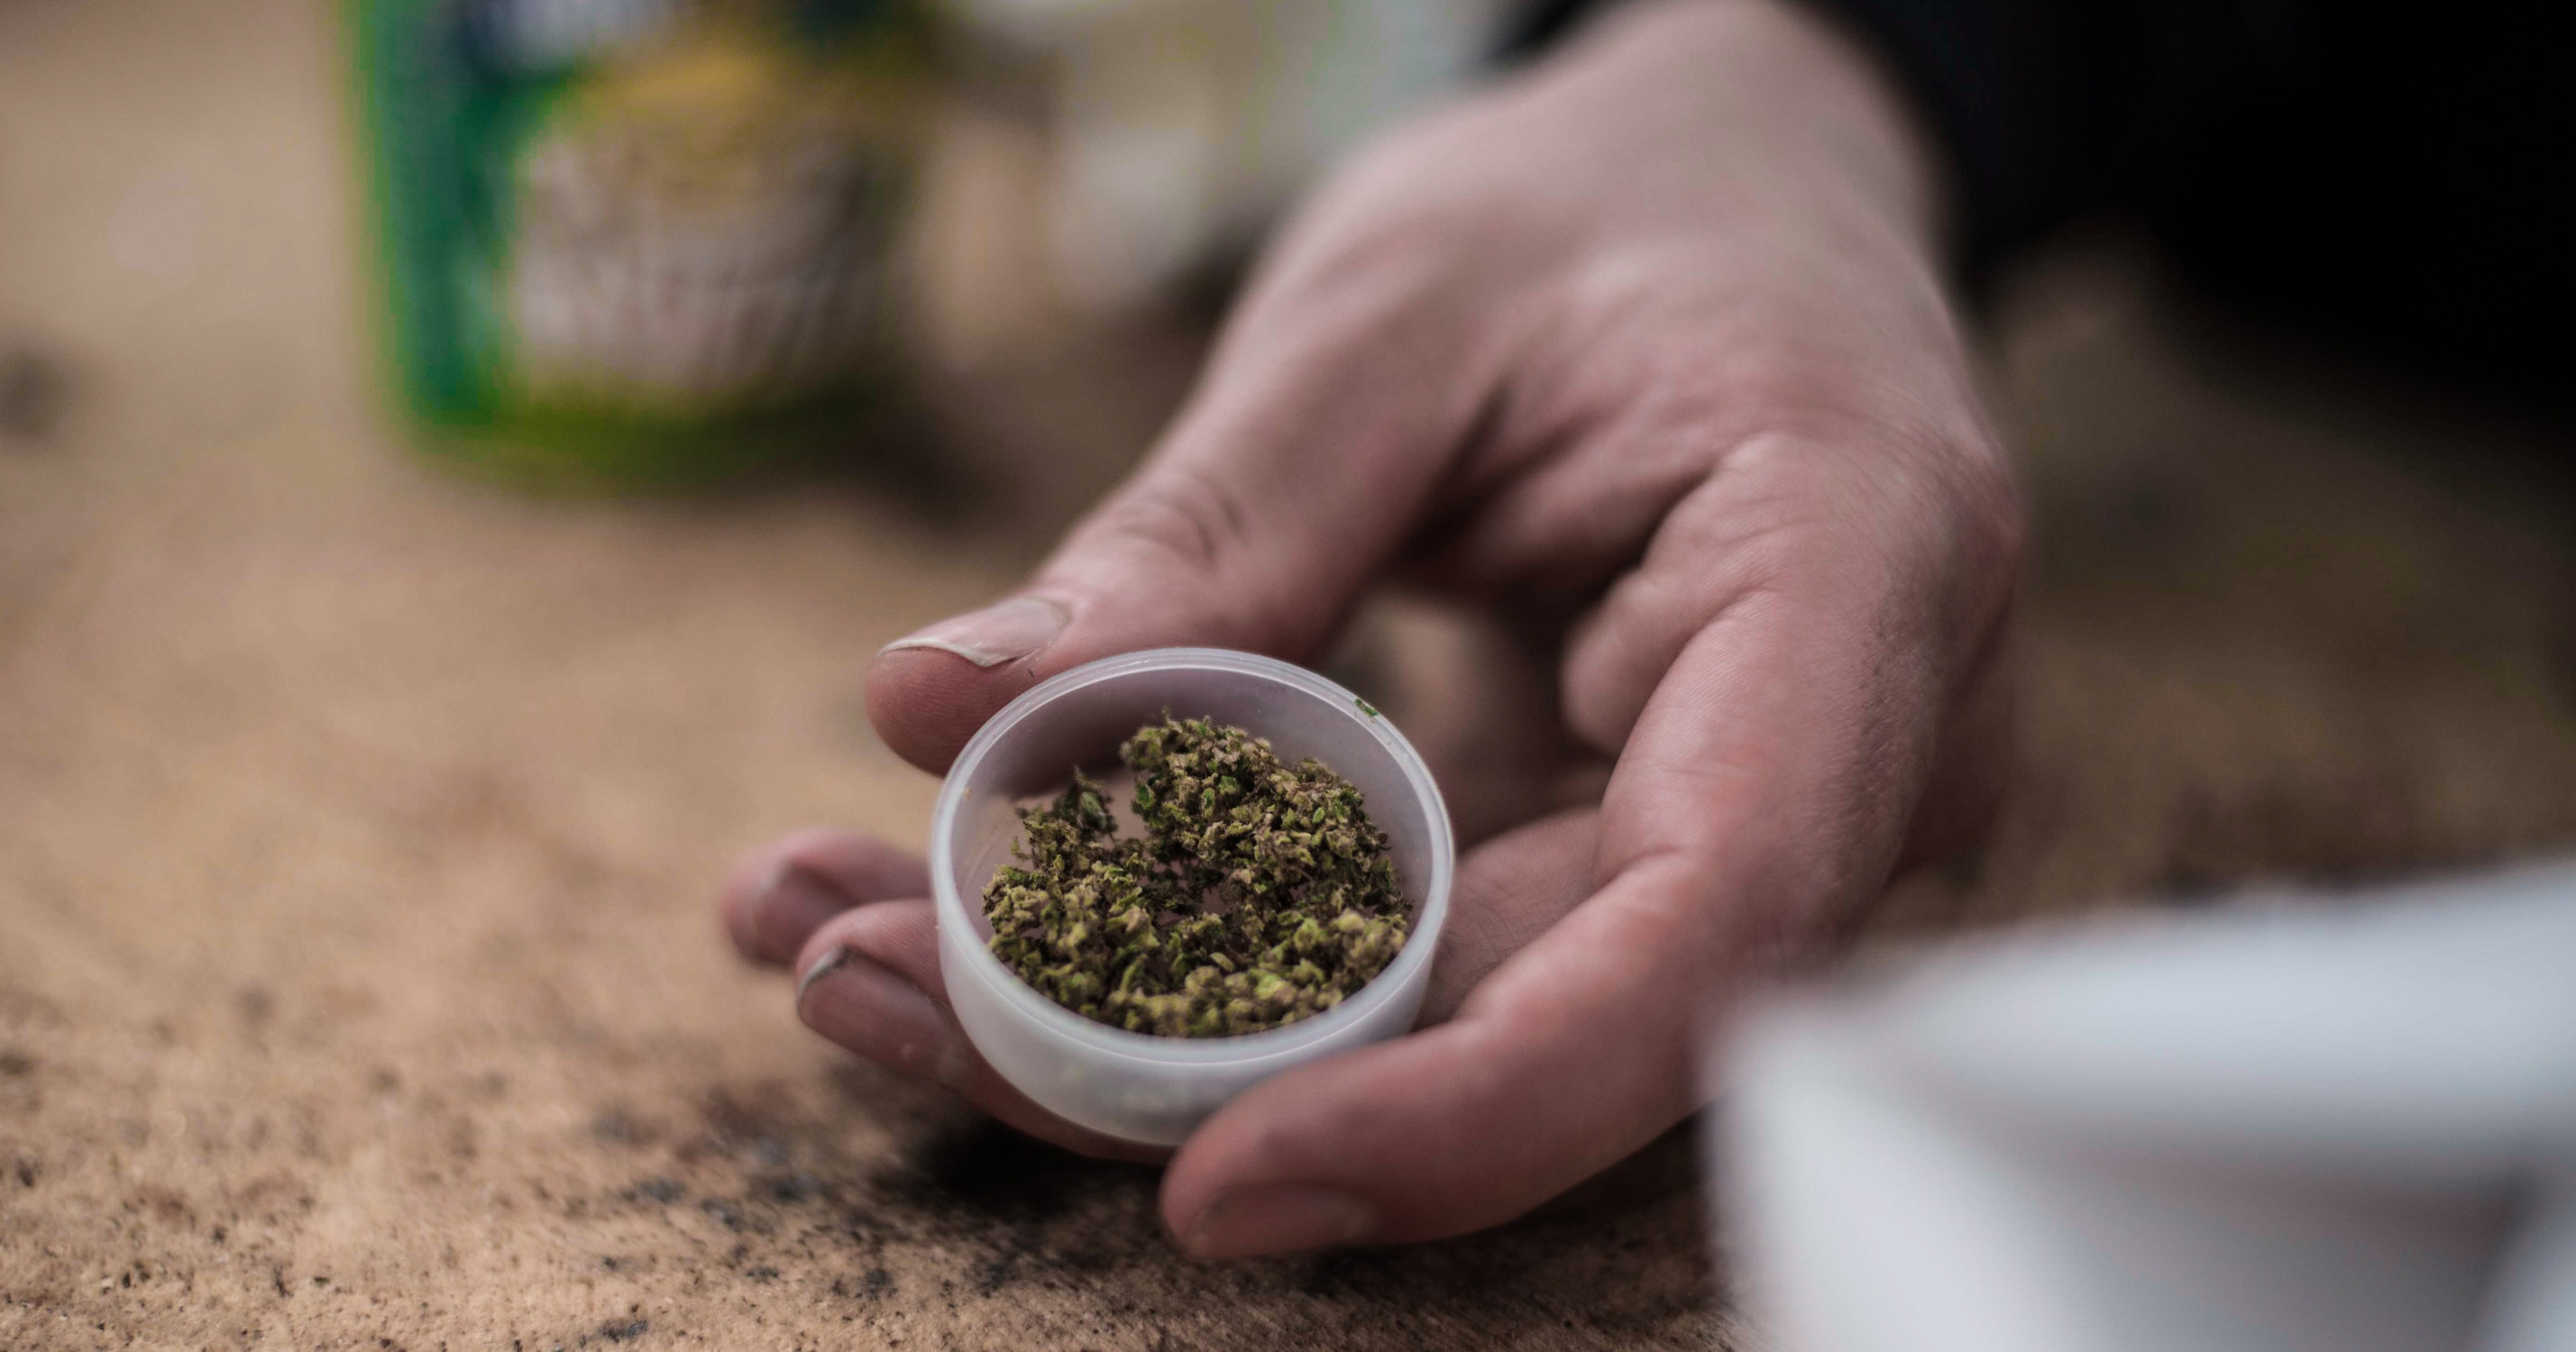 Can pot expire?